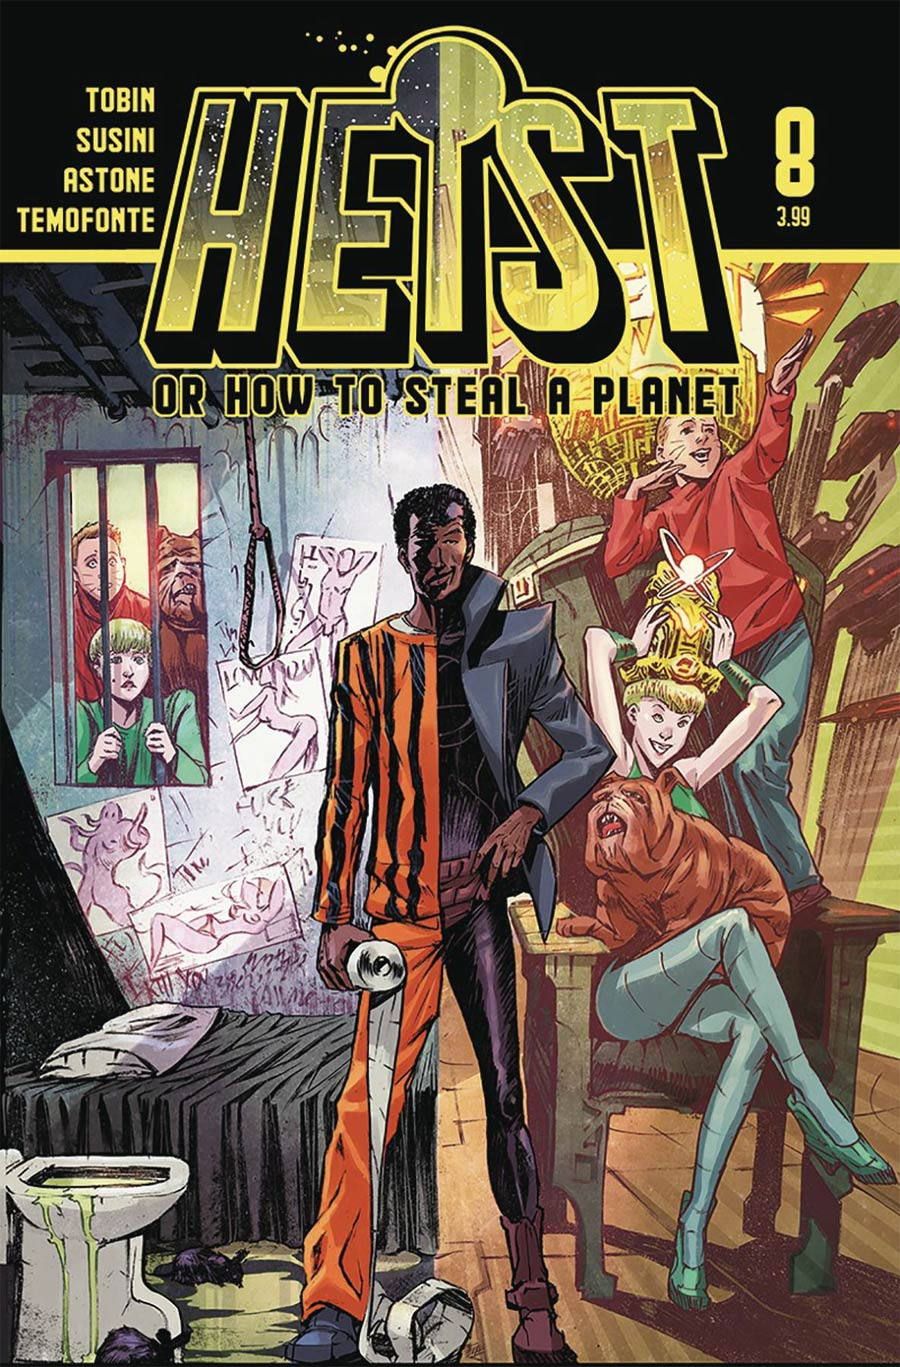 Heist: How To Steal A Planet #8 (2020)